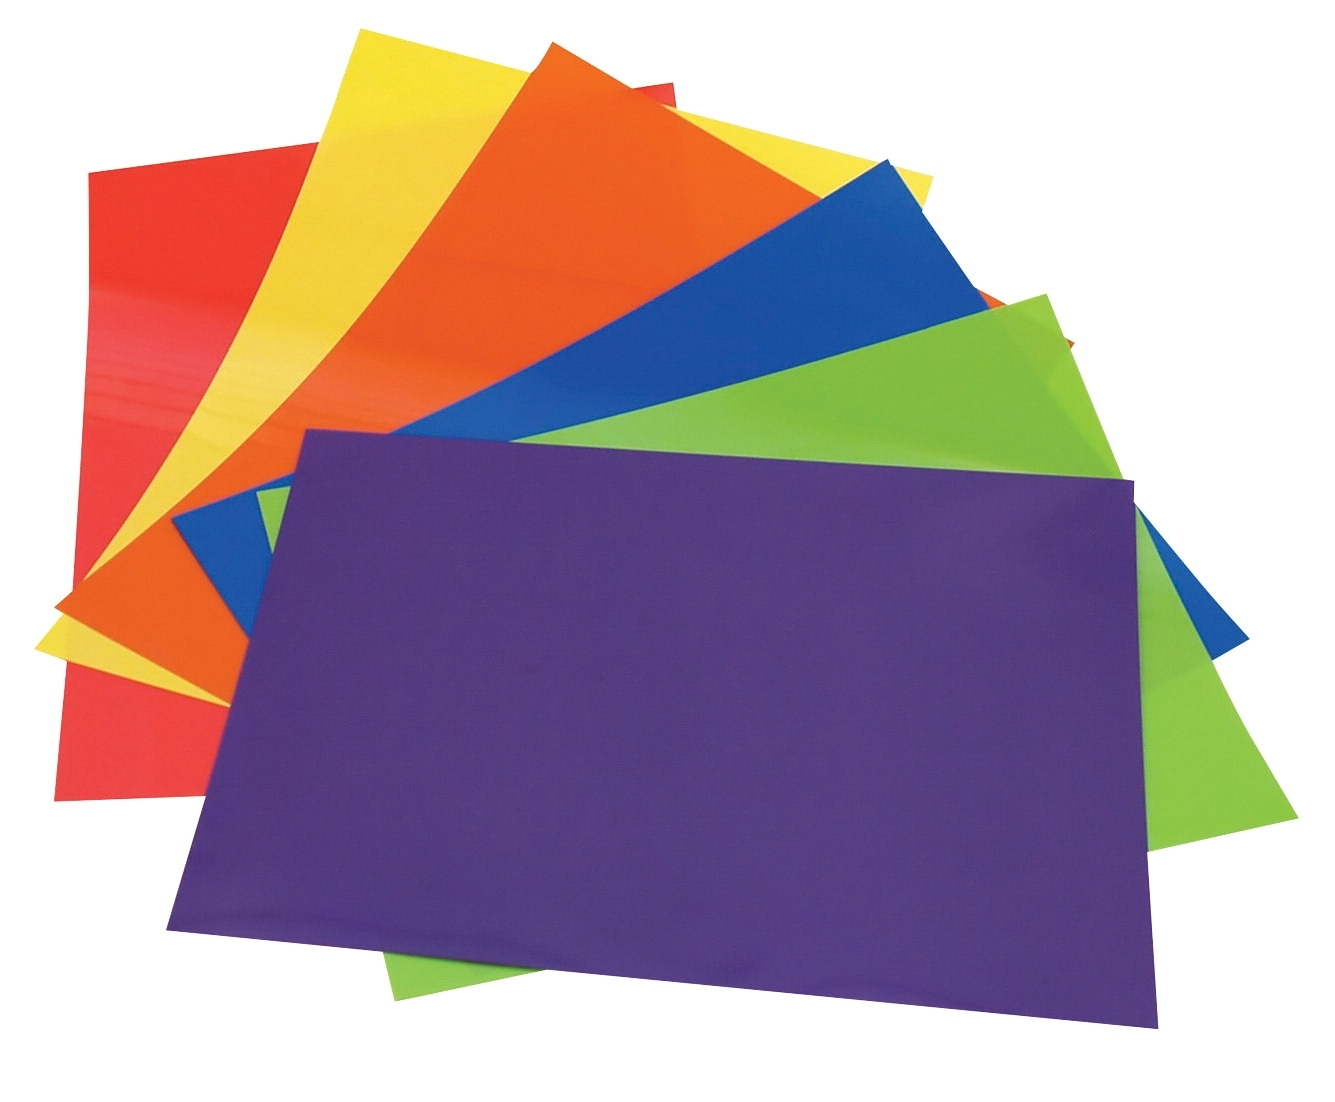 Learning: Classroom Arts & Crafts Crafts Paper Crafts - 1293521 - Grafix Colored Shrink Film; 8-1/2 X 11 Inches; Assorted Color; Pack Of 60 1293521